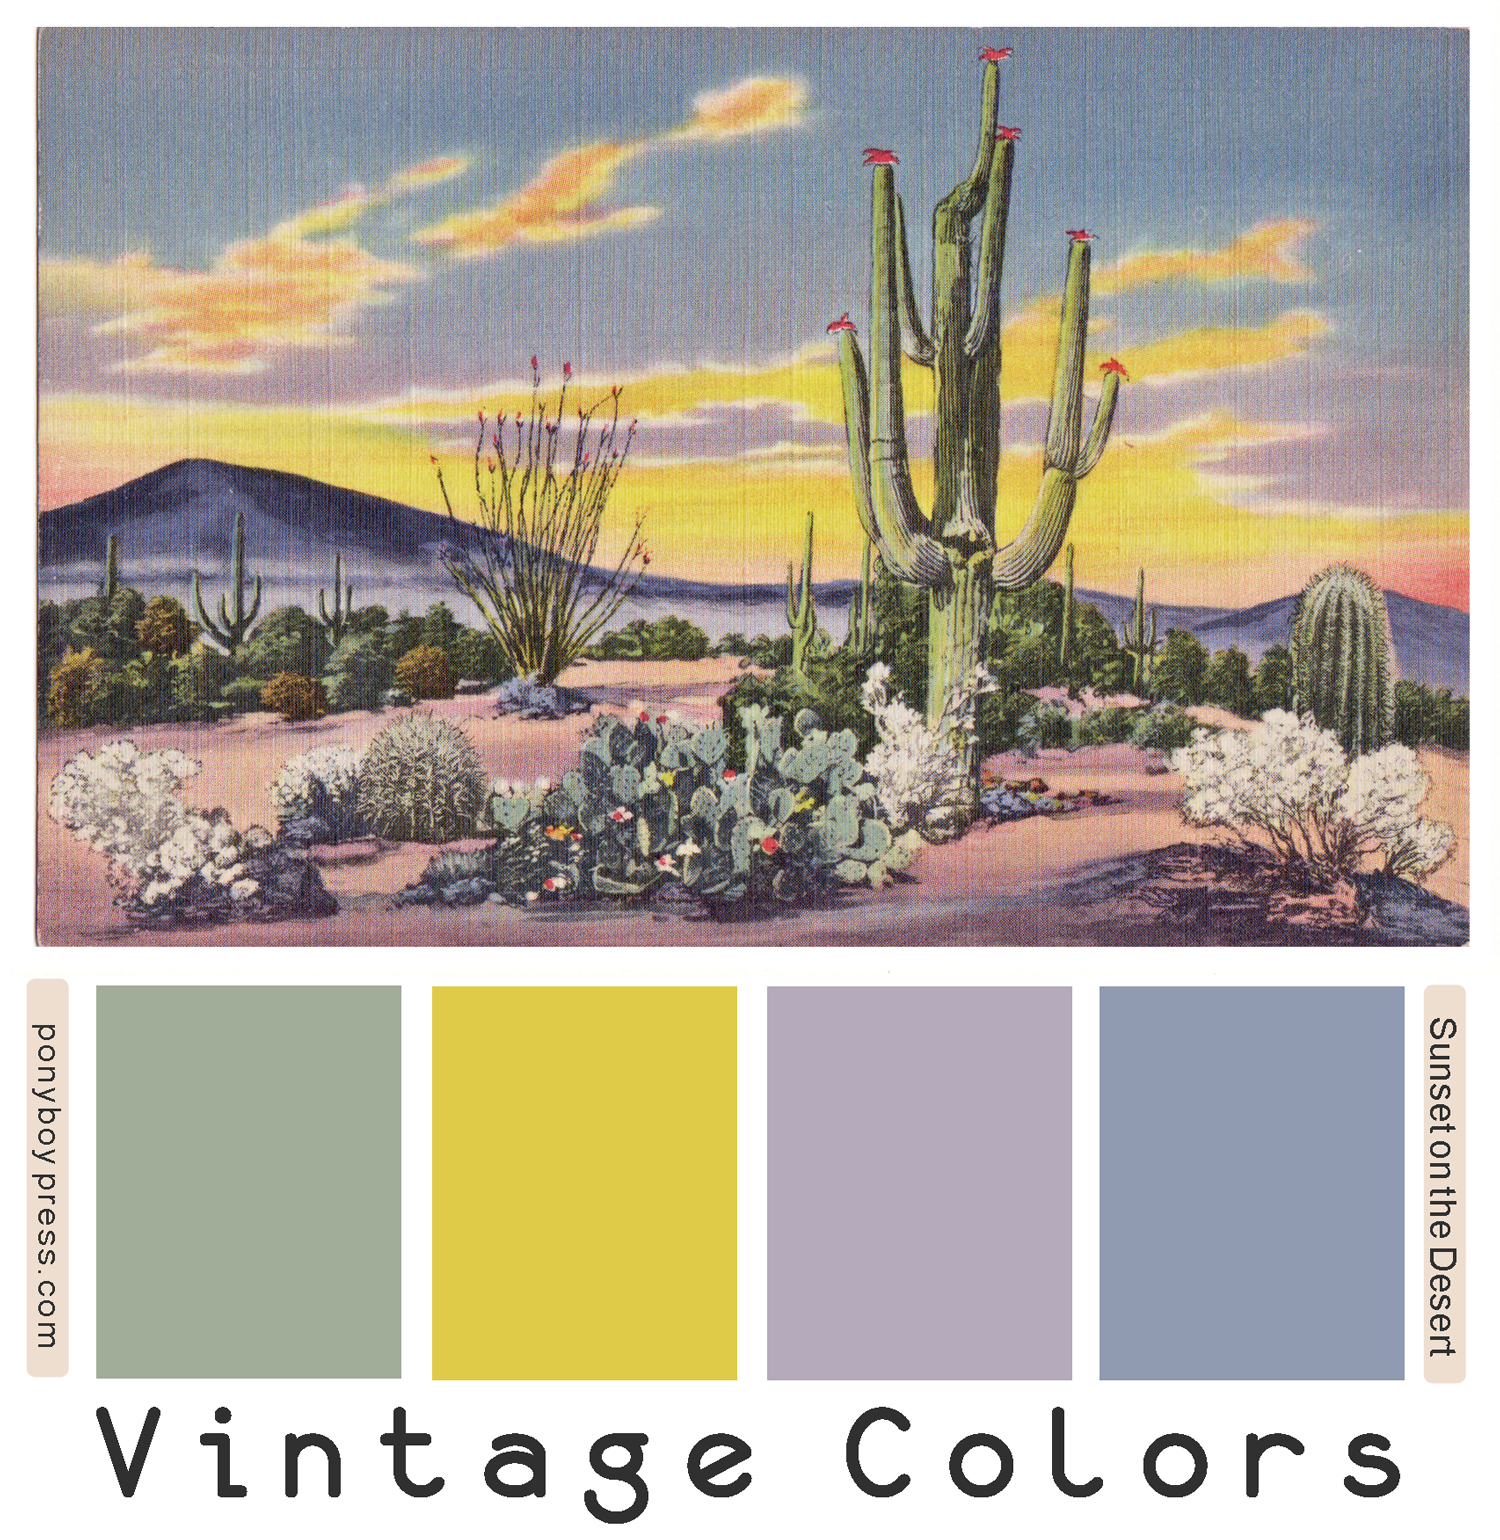 vintage color palette sunset on the desert desert color palette